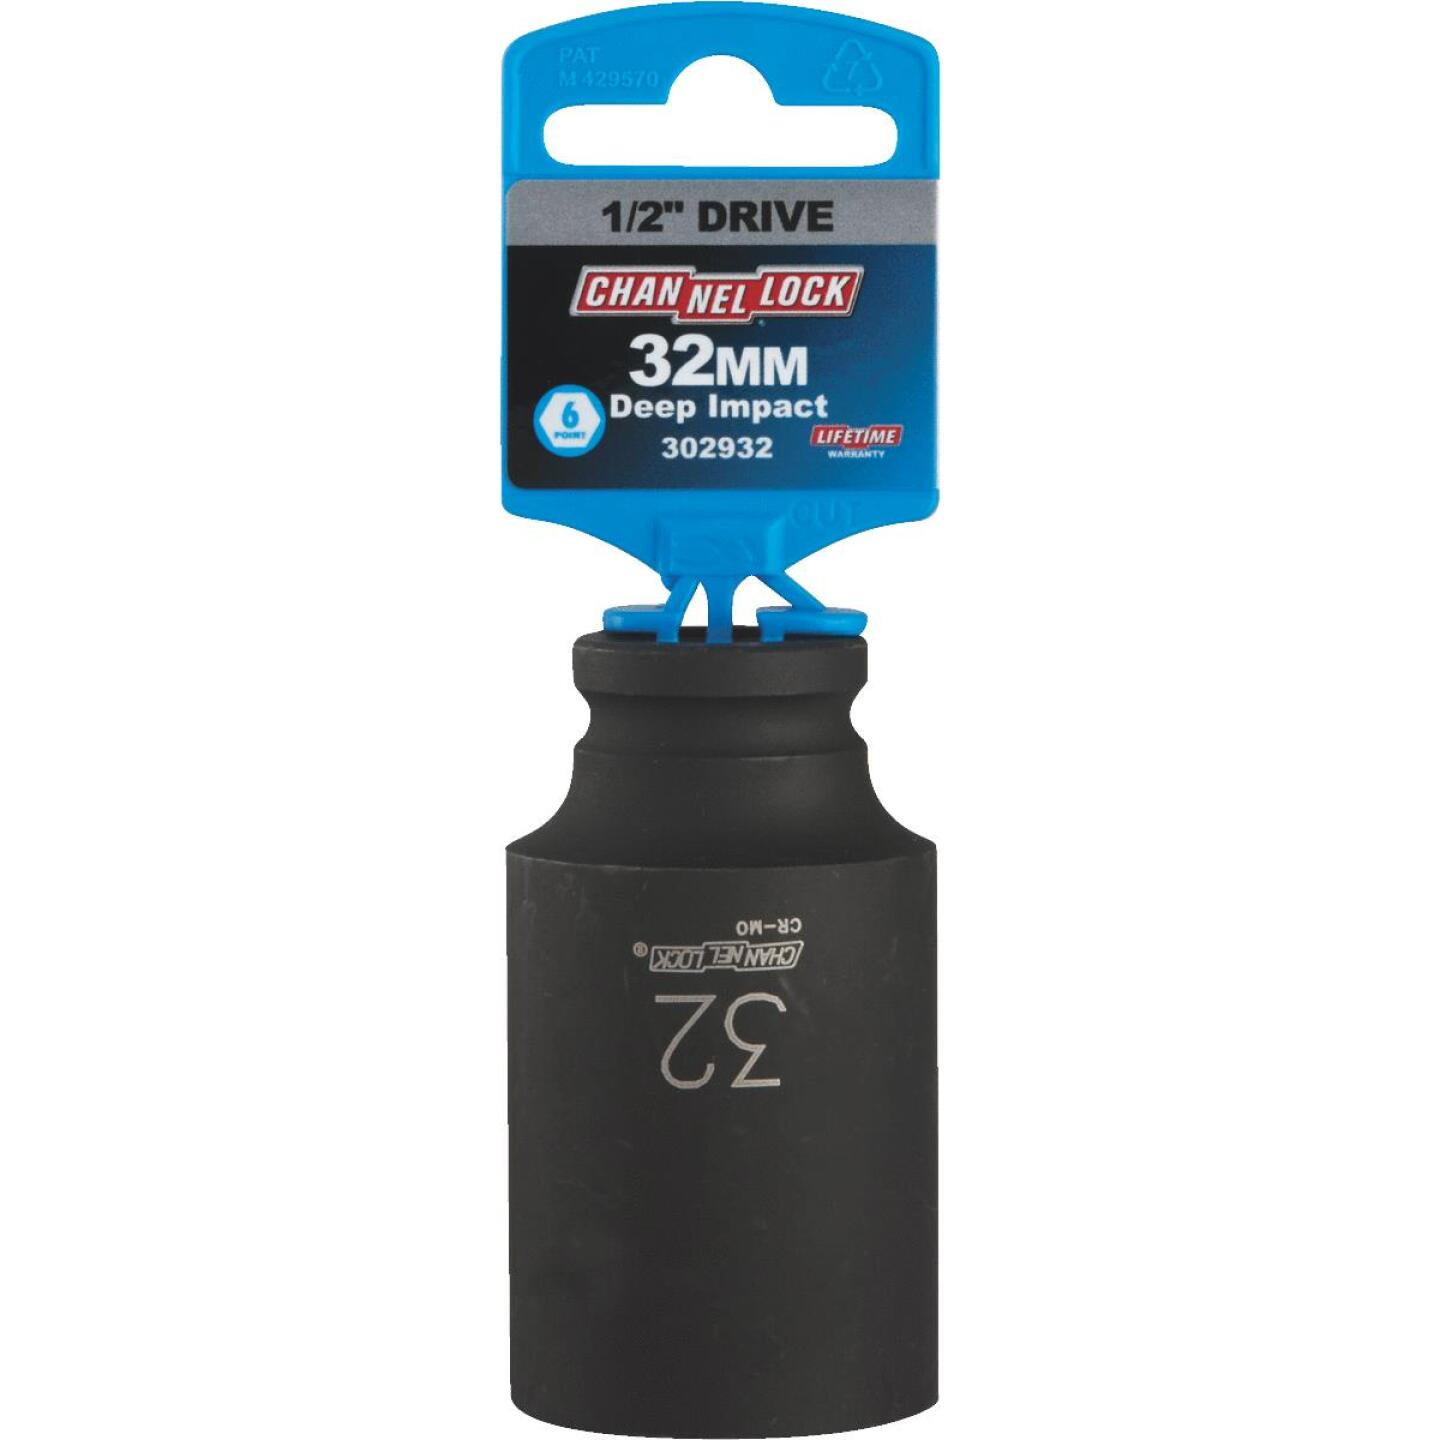 Channellock 1/2 In. Drive 32 mm 6-Point Deep Metric Impact Socket Image 2